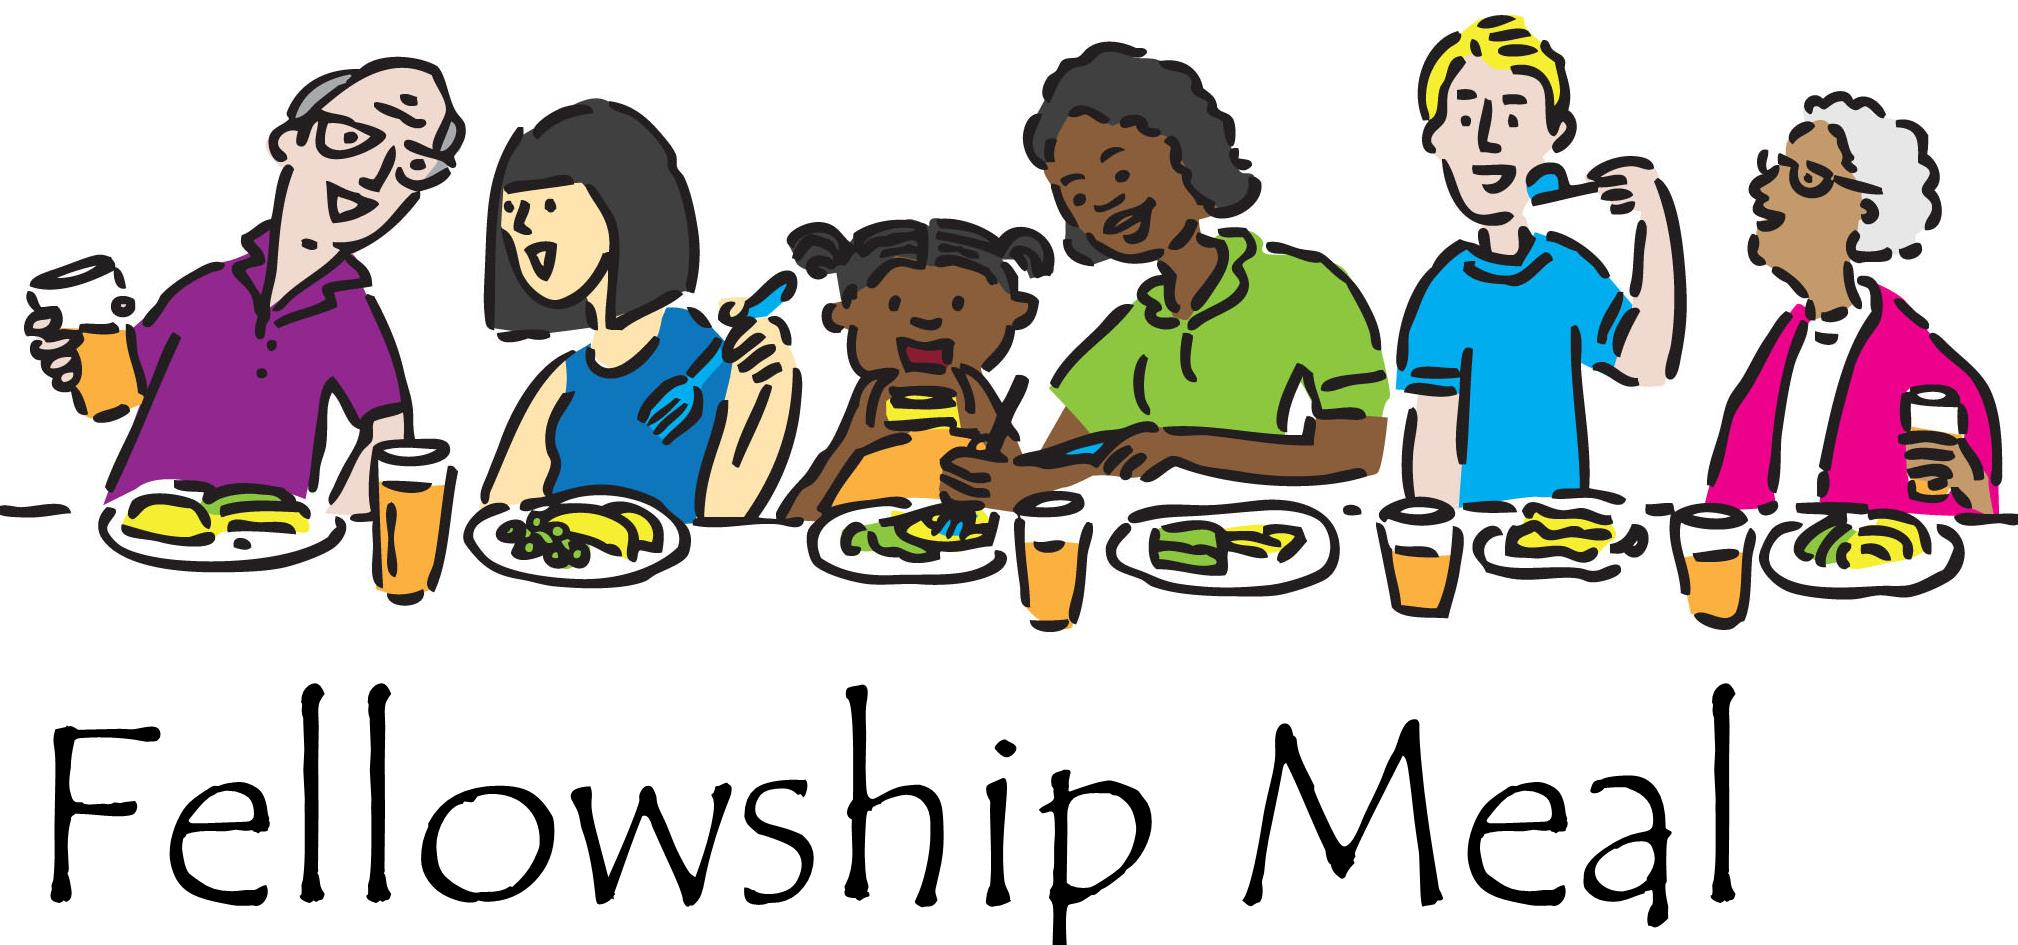 Church fellowship dinner clipart 2